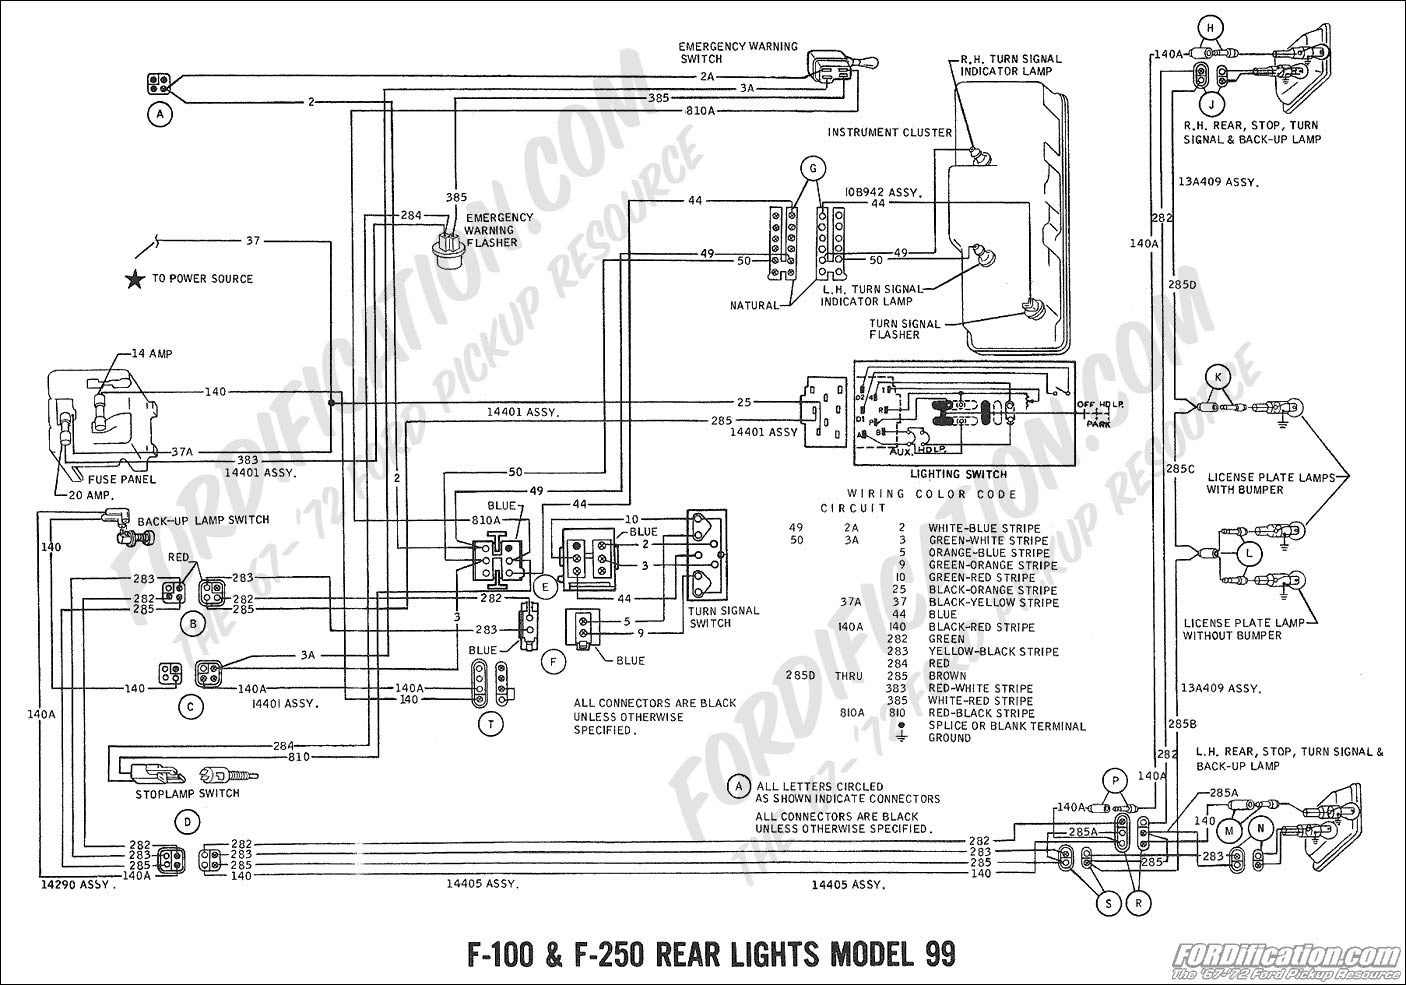 2003 Ford Explorer Interior Fuse Location furthermore WiringByColor together with 2013 Ford Super Duty Fuse Diagram Trailer Plug further F550 Fuse Box Diagram moreover 94 F250 Fuse Box Diagram. on 2002 f250 fuse panel diagram